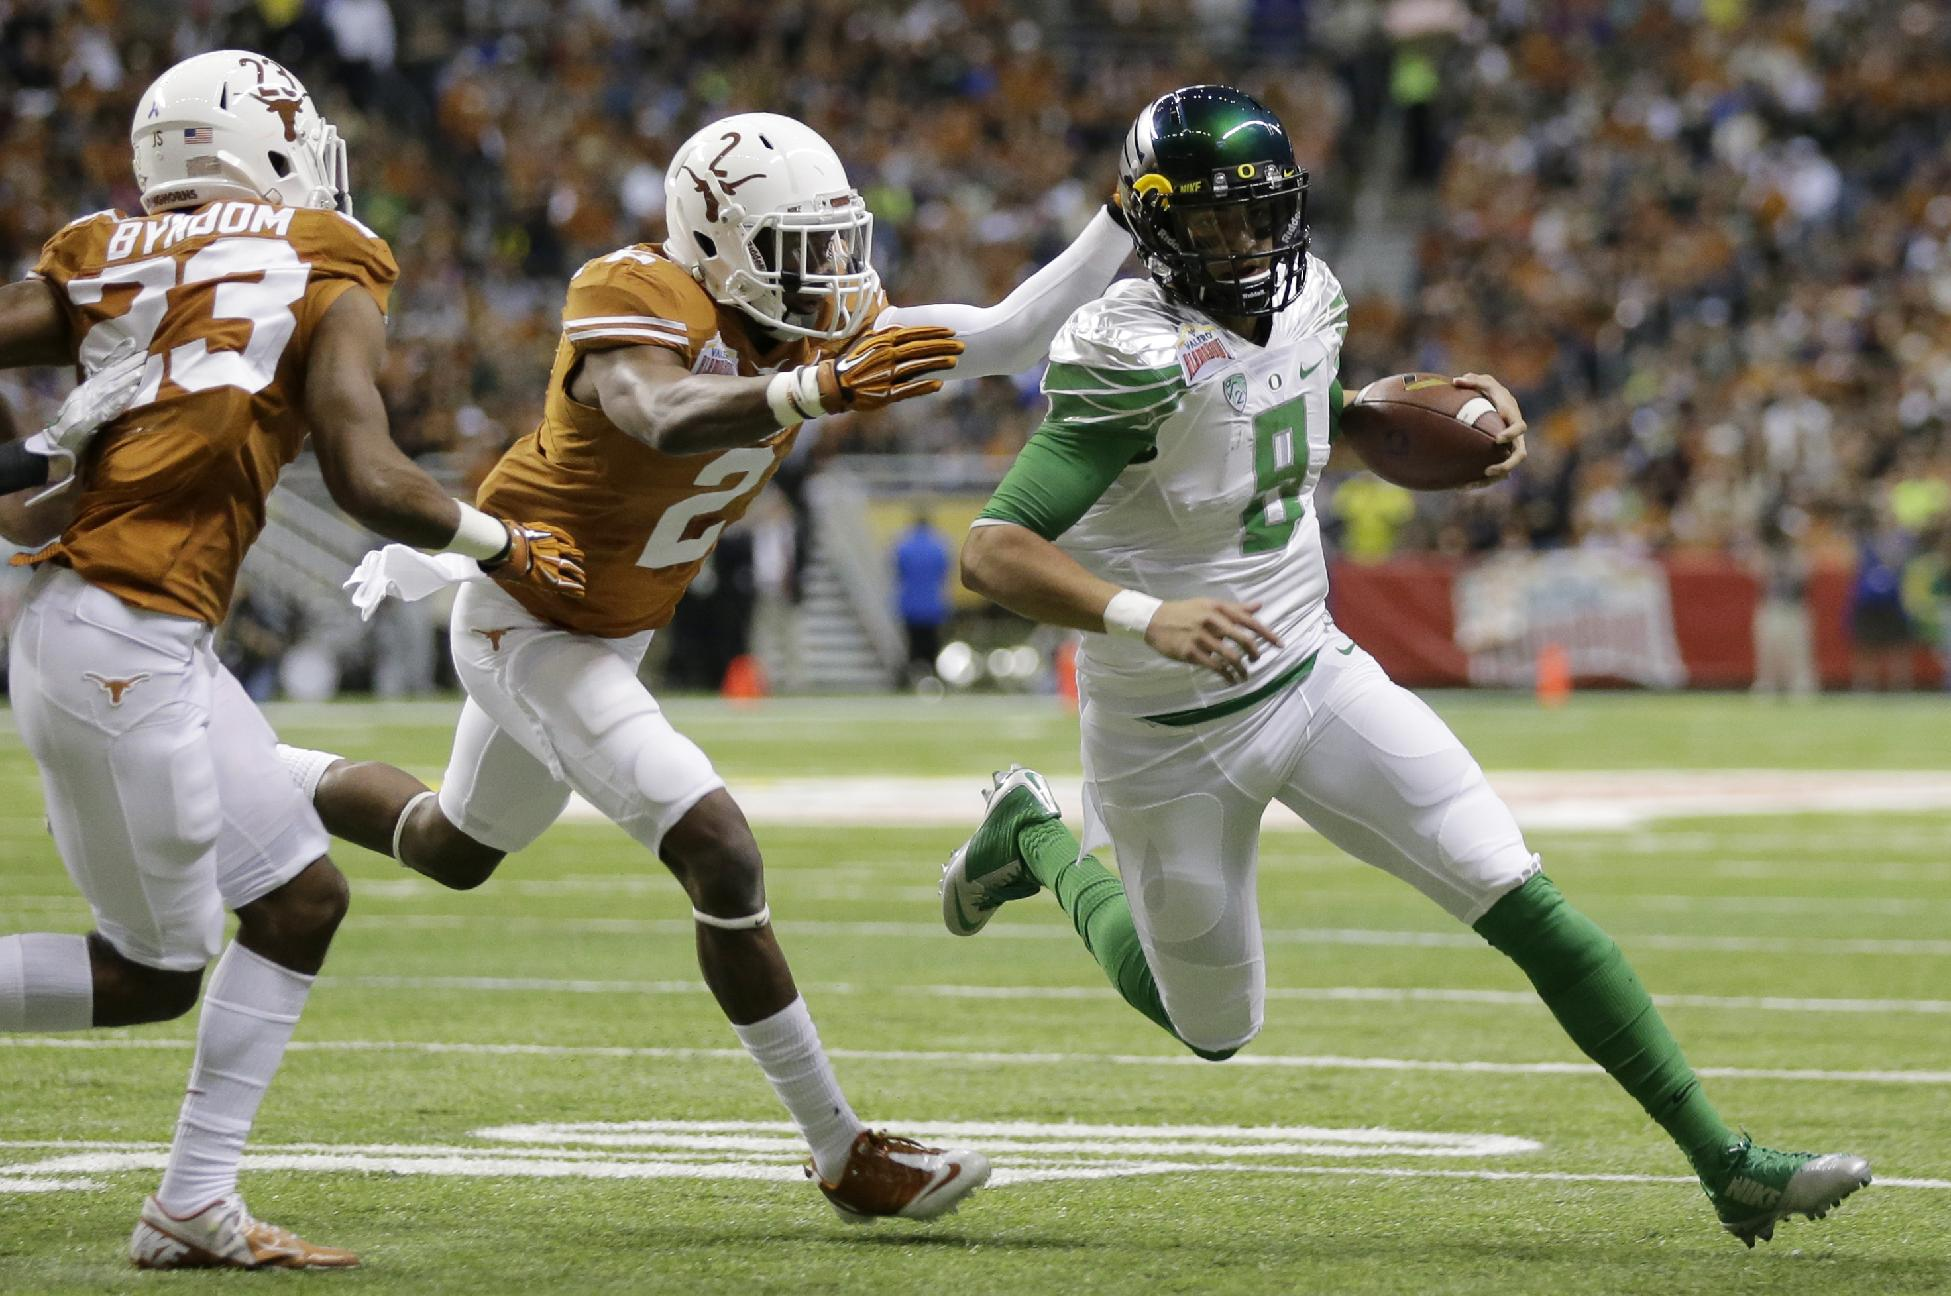 Oregon's Marcus Mariota (8) is chased by Texas' Mykkele Thompson (2) during the first quarter in the Valero Alamo Bowl NCAA college football game, Monday,  Dec. 30, 2013, in San Antonio